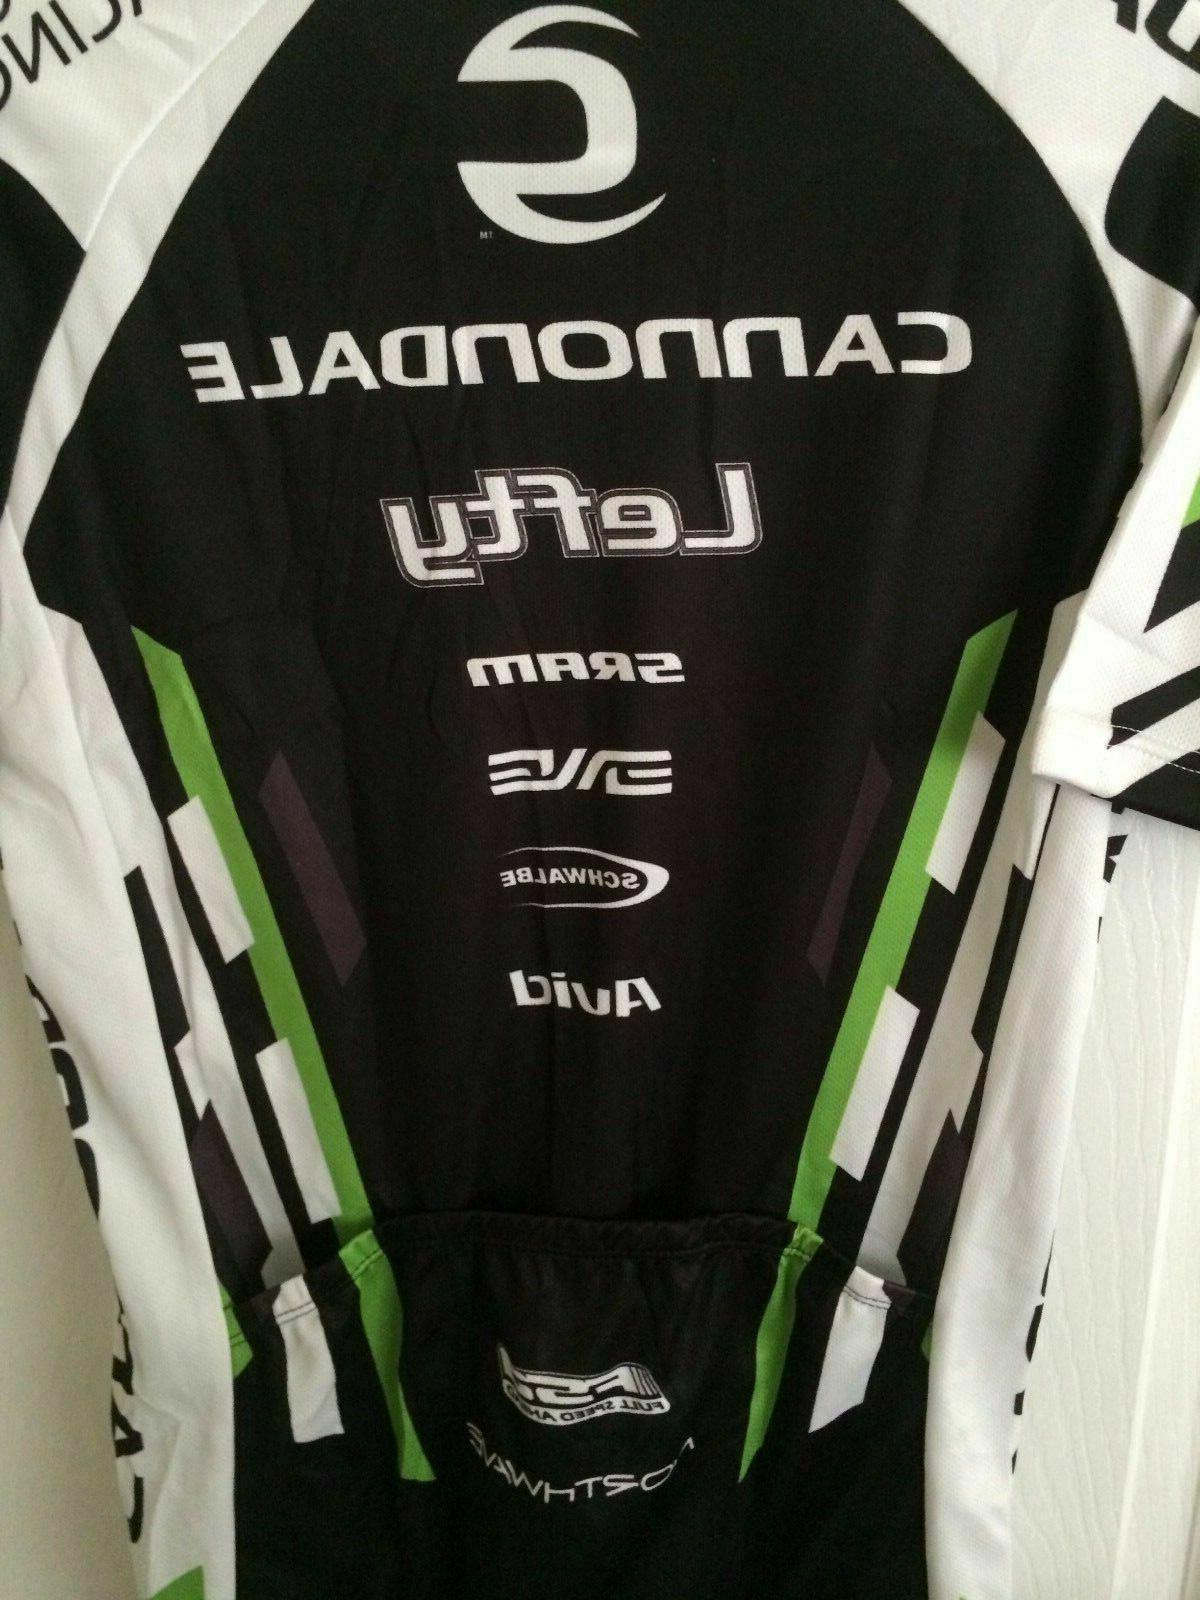 Cannondale Cycling Jersey Jersey